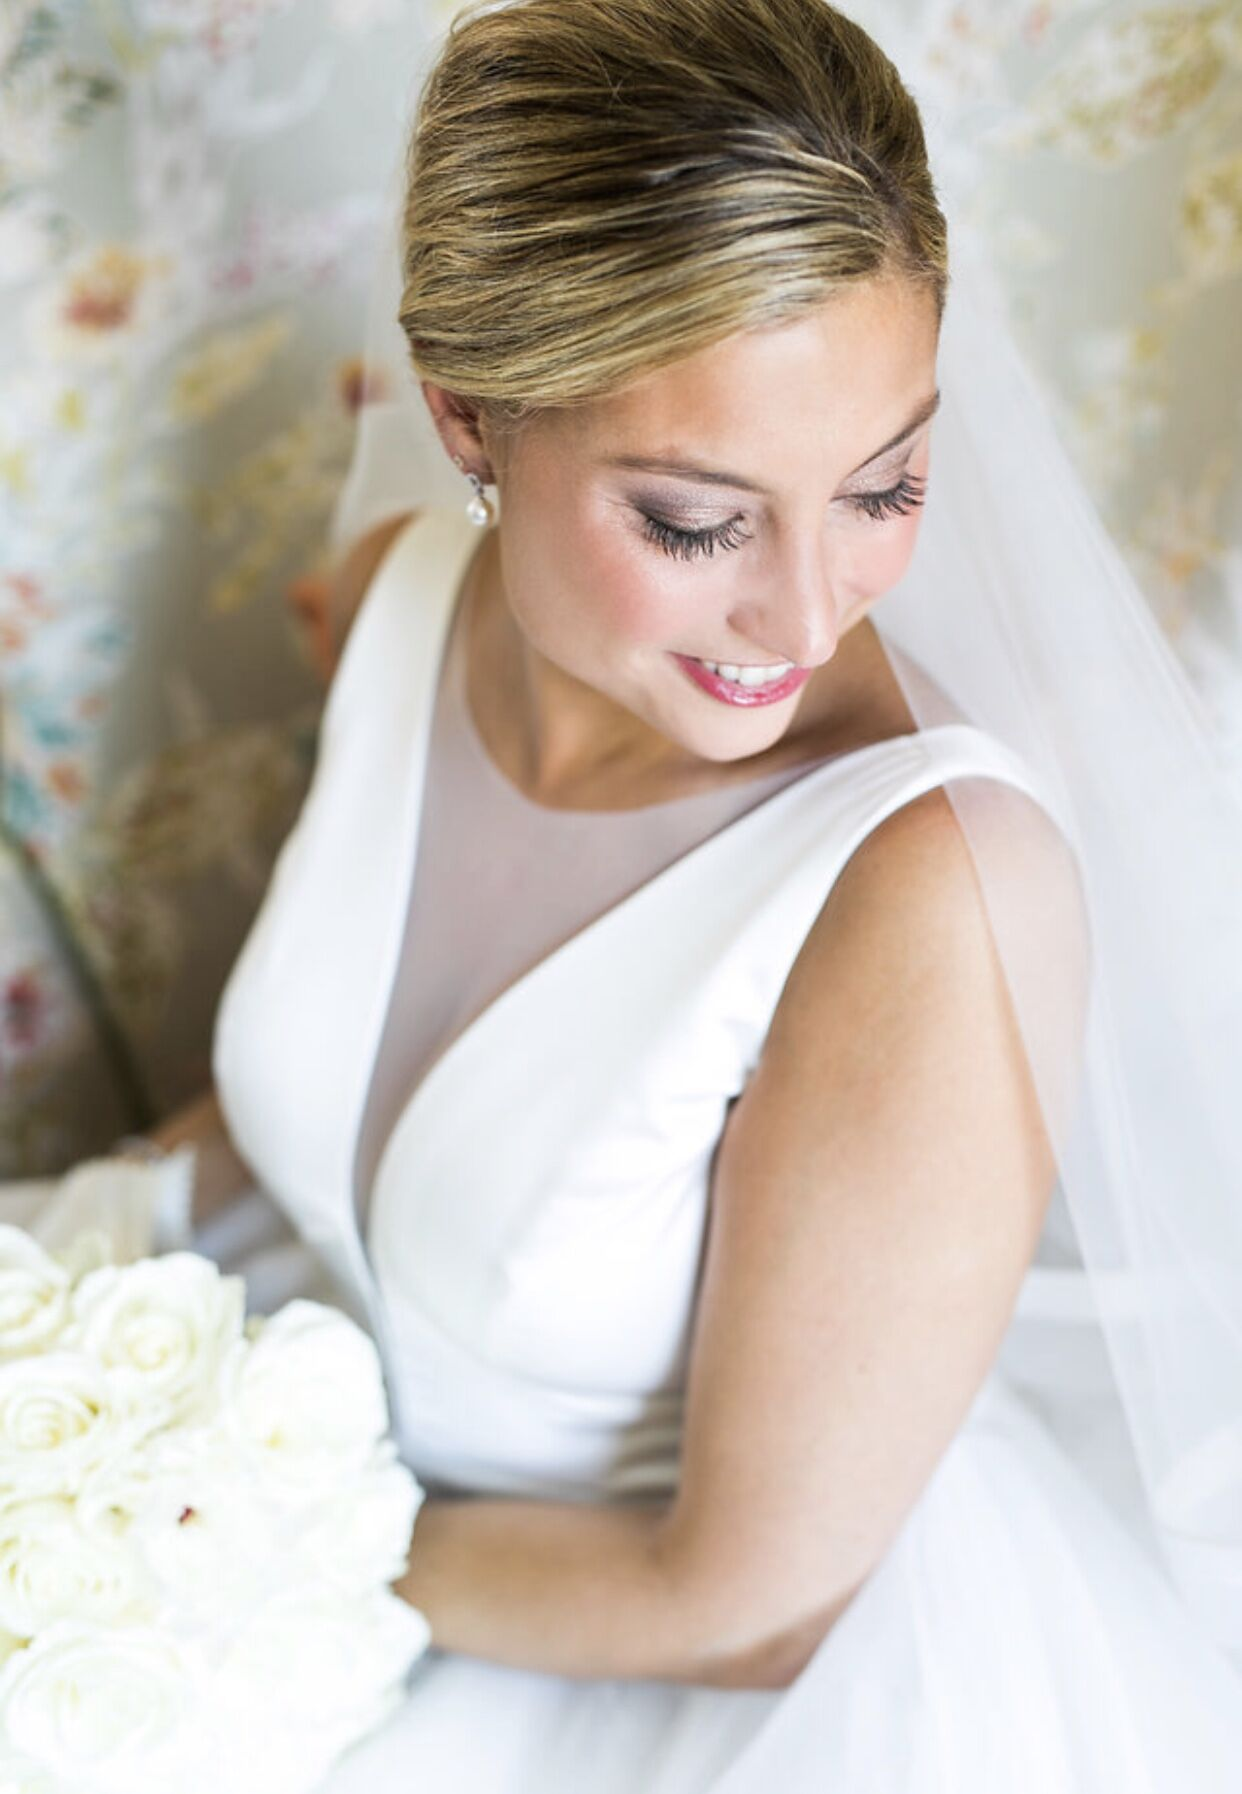 bridal hair & makeup by nicole - bellmore, ny